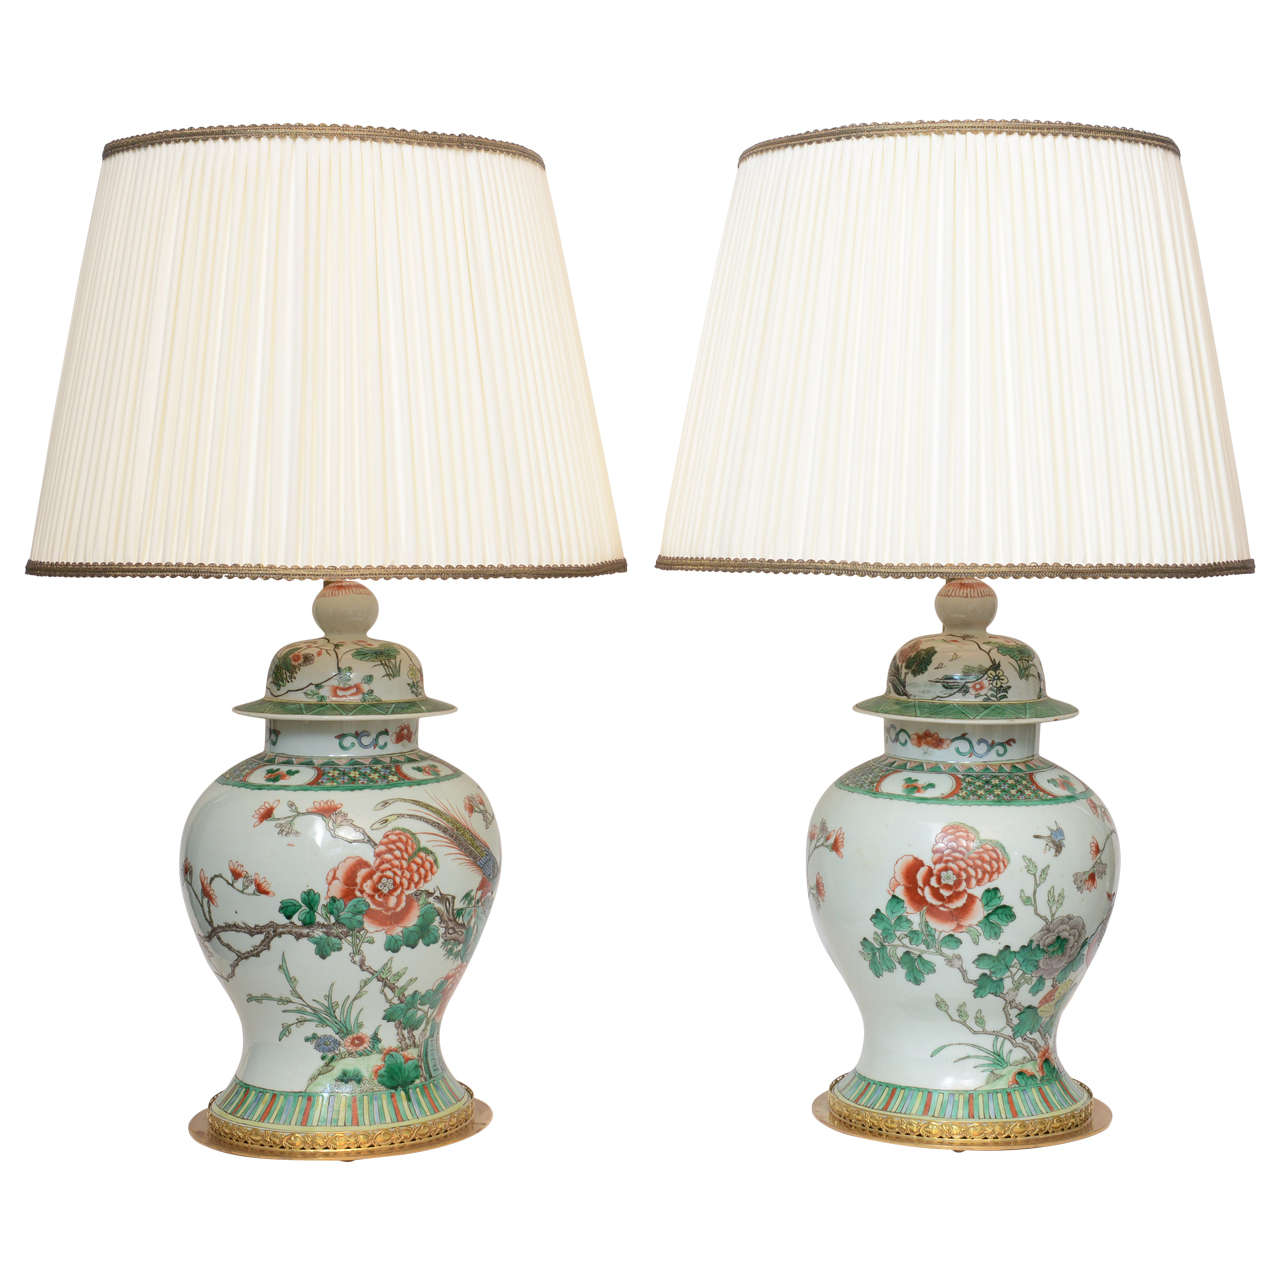 Pair of 19th century chinese ginger jar lamps with painted birds pair of 19th century chinese ginger jar lamps with painted birds and flowers at 1stdibs aloadofball Gallery